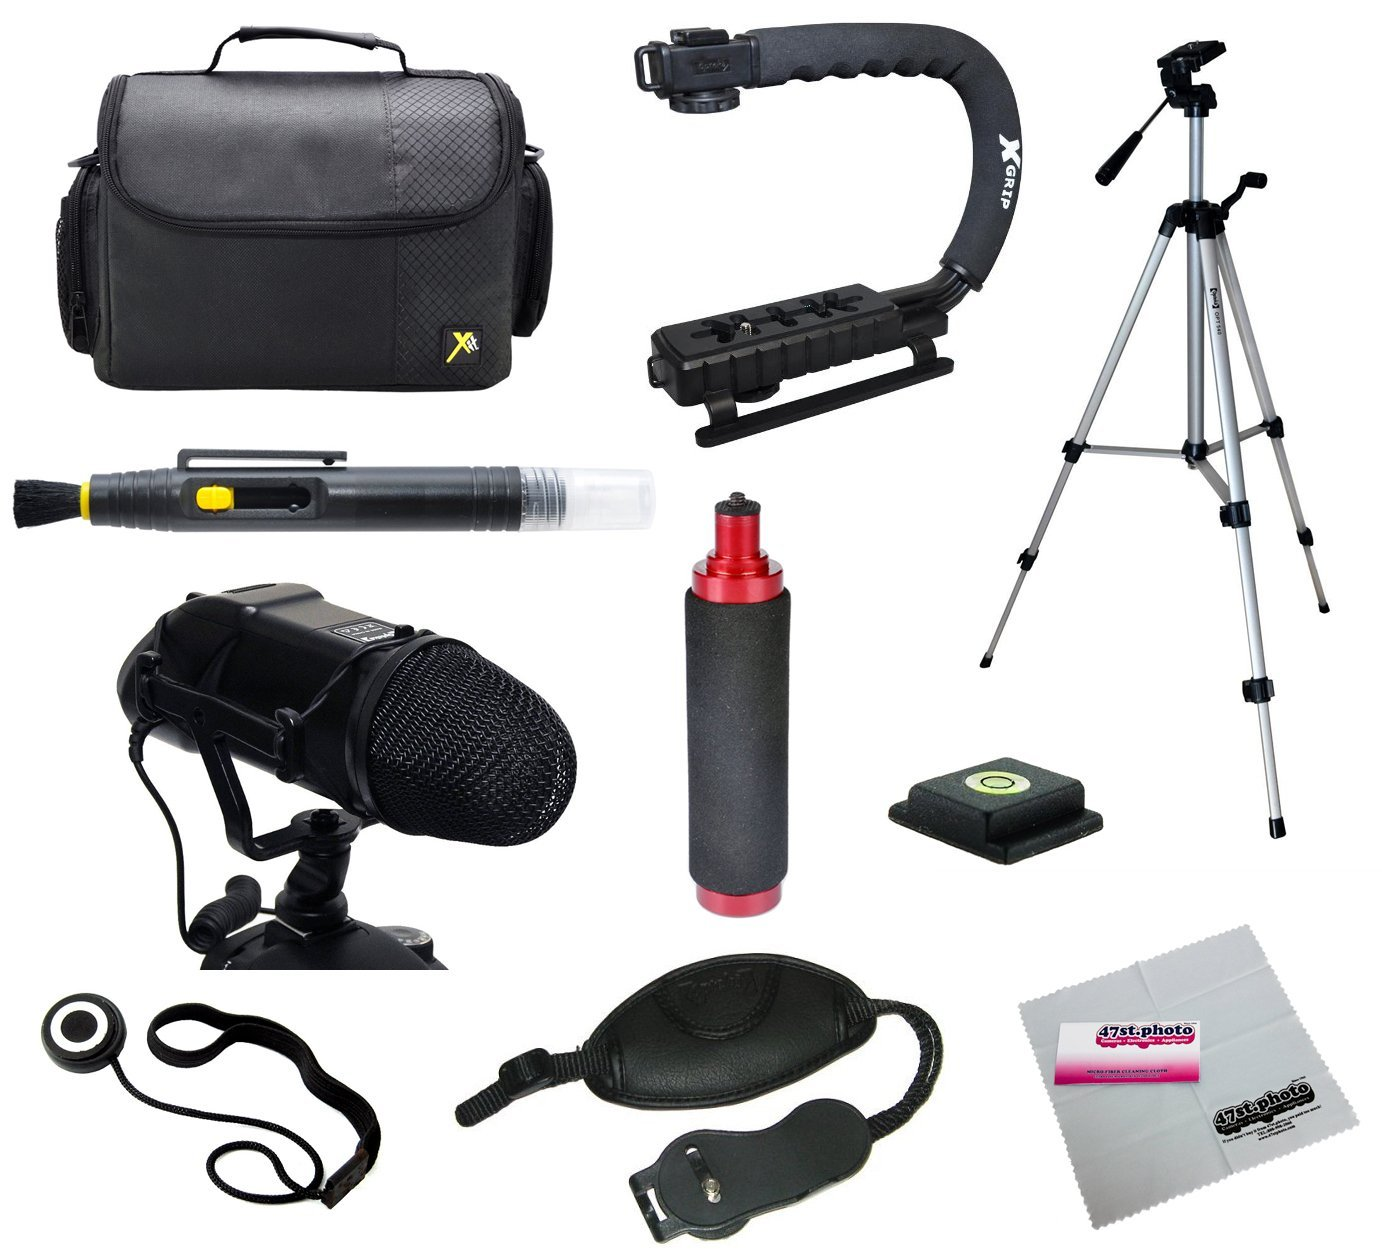 Opteka Videographers Deluxe Kit with VM-200 Microphone, Case, Tripod, X-Grip and More for Canon, Nikon, Sony and Pentax Digital SLR Cameras